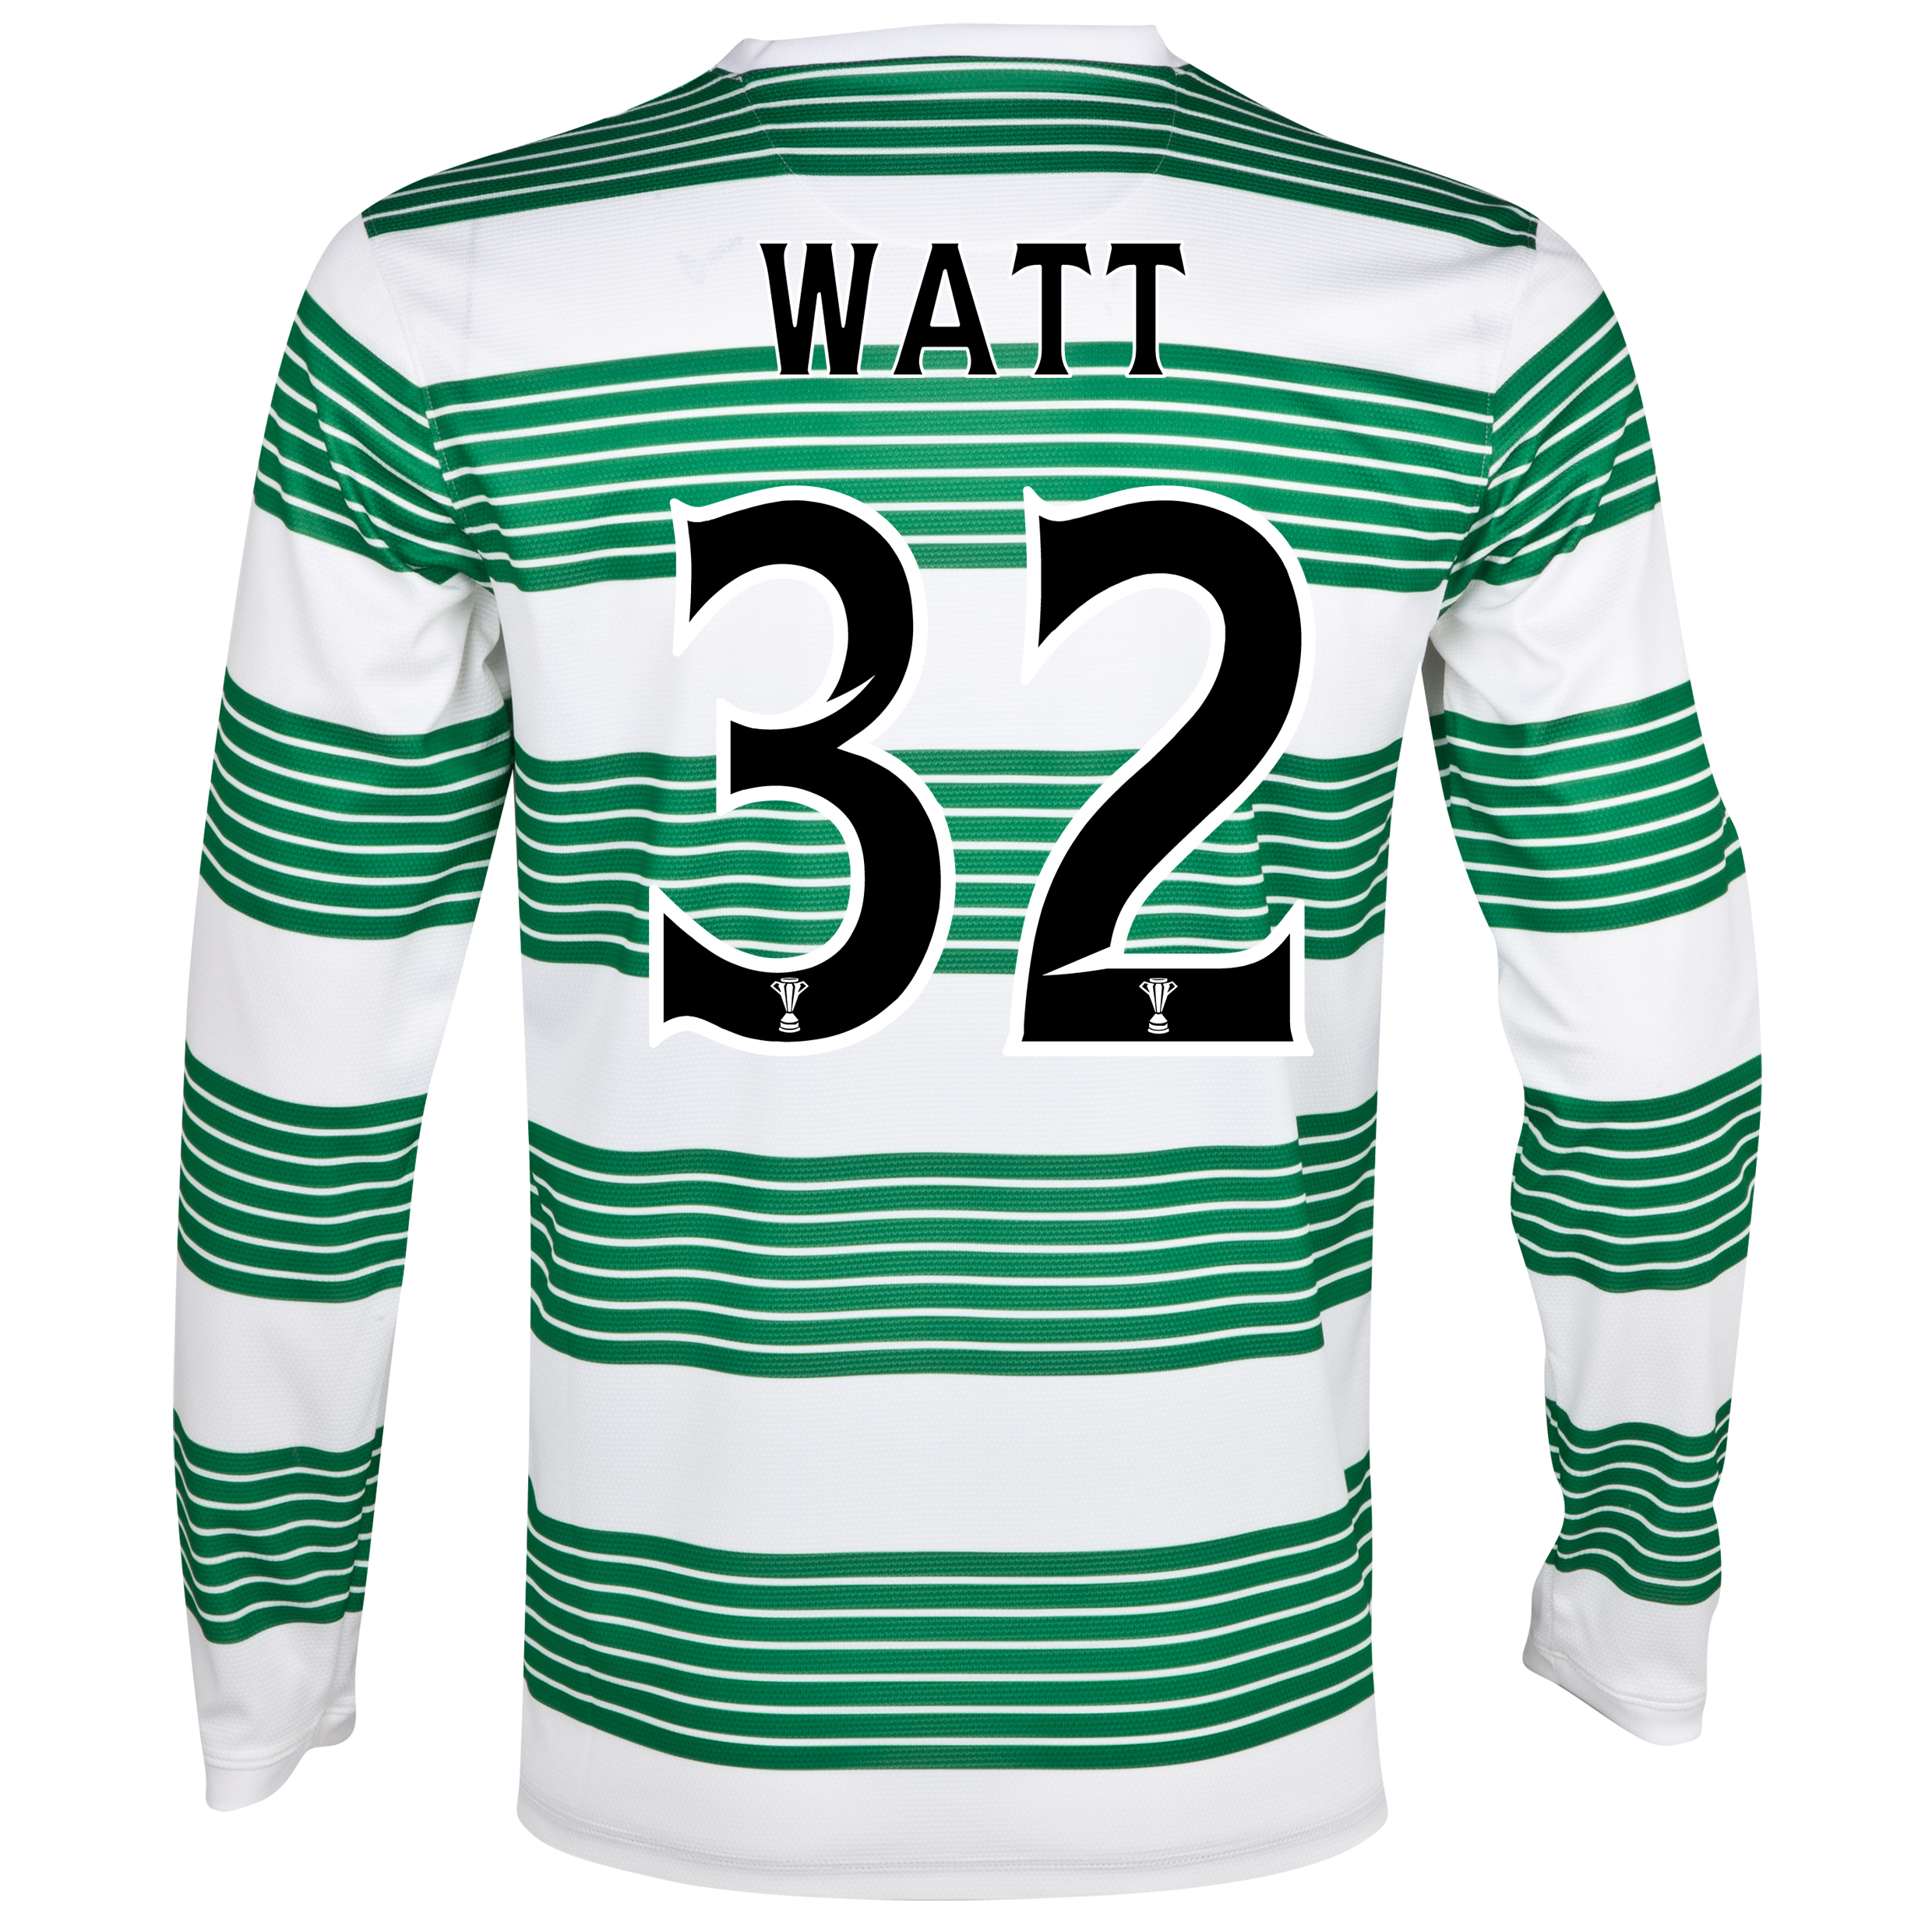 Celtic Home Shirt 2013/14 - L/S- Unsponsored with Watt 32 printing